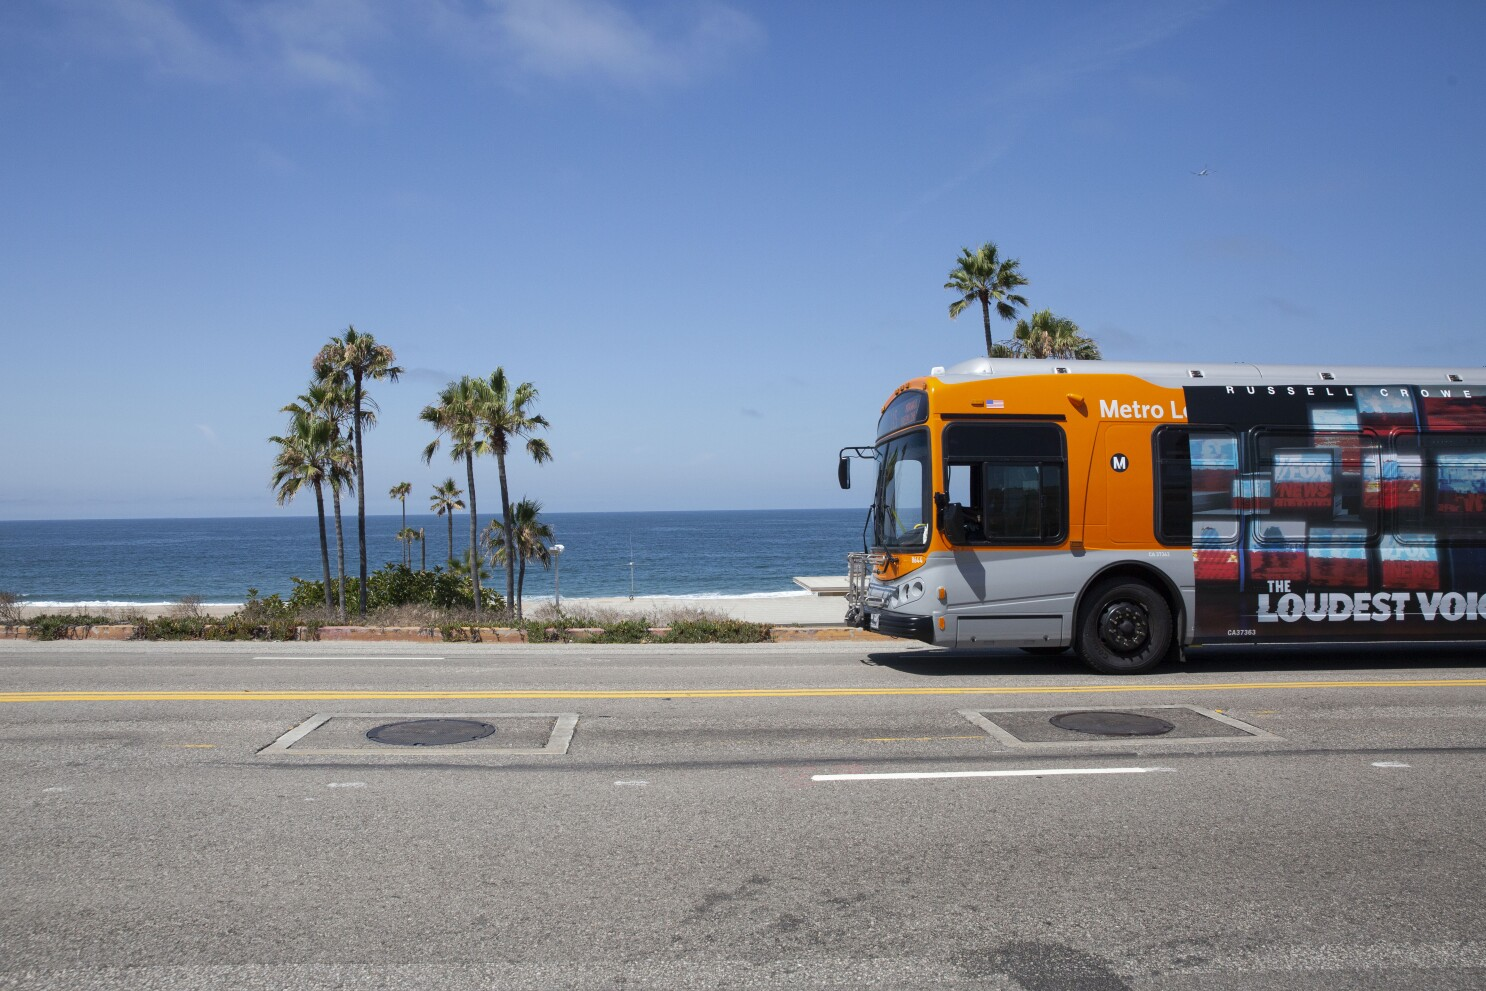 Riding the buses of Los Angeles: A beginner's guide